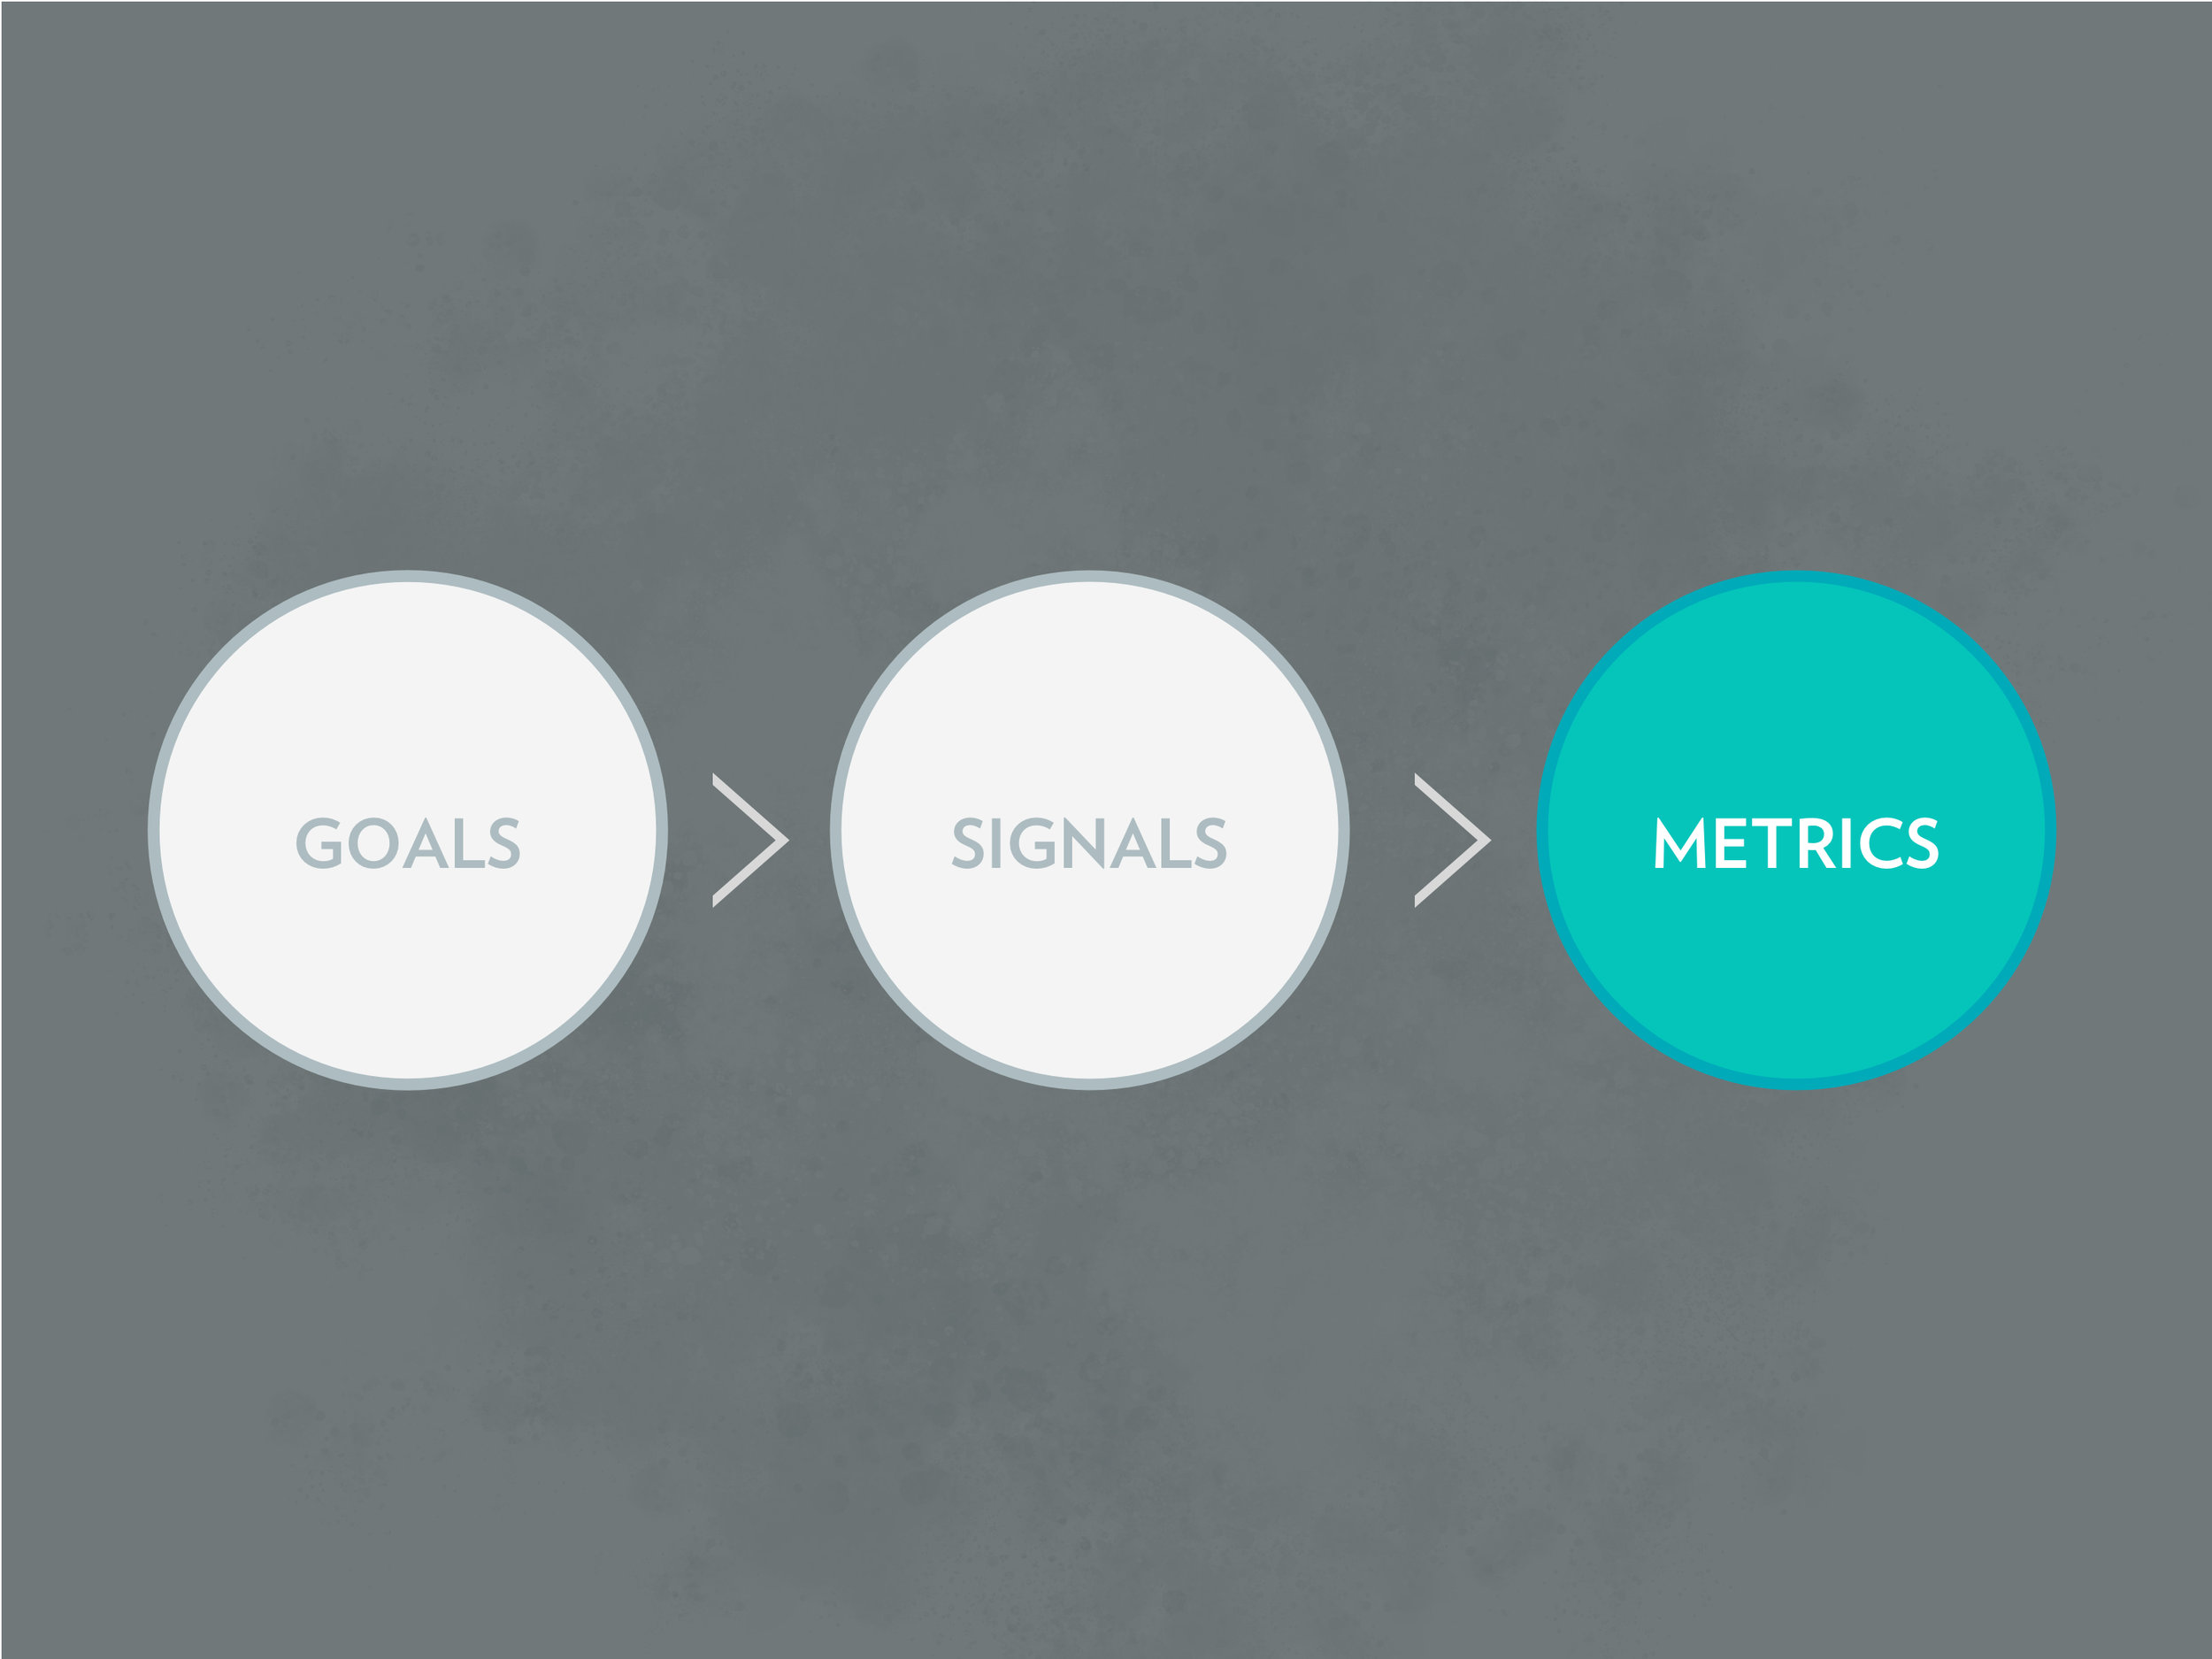 What makes a good UX metric?